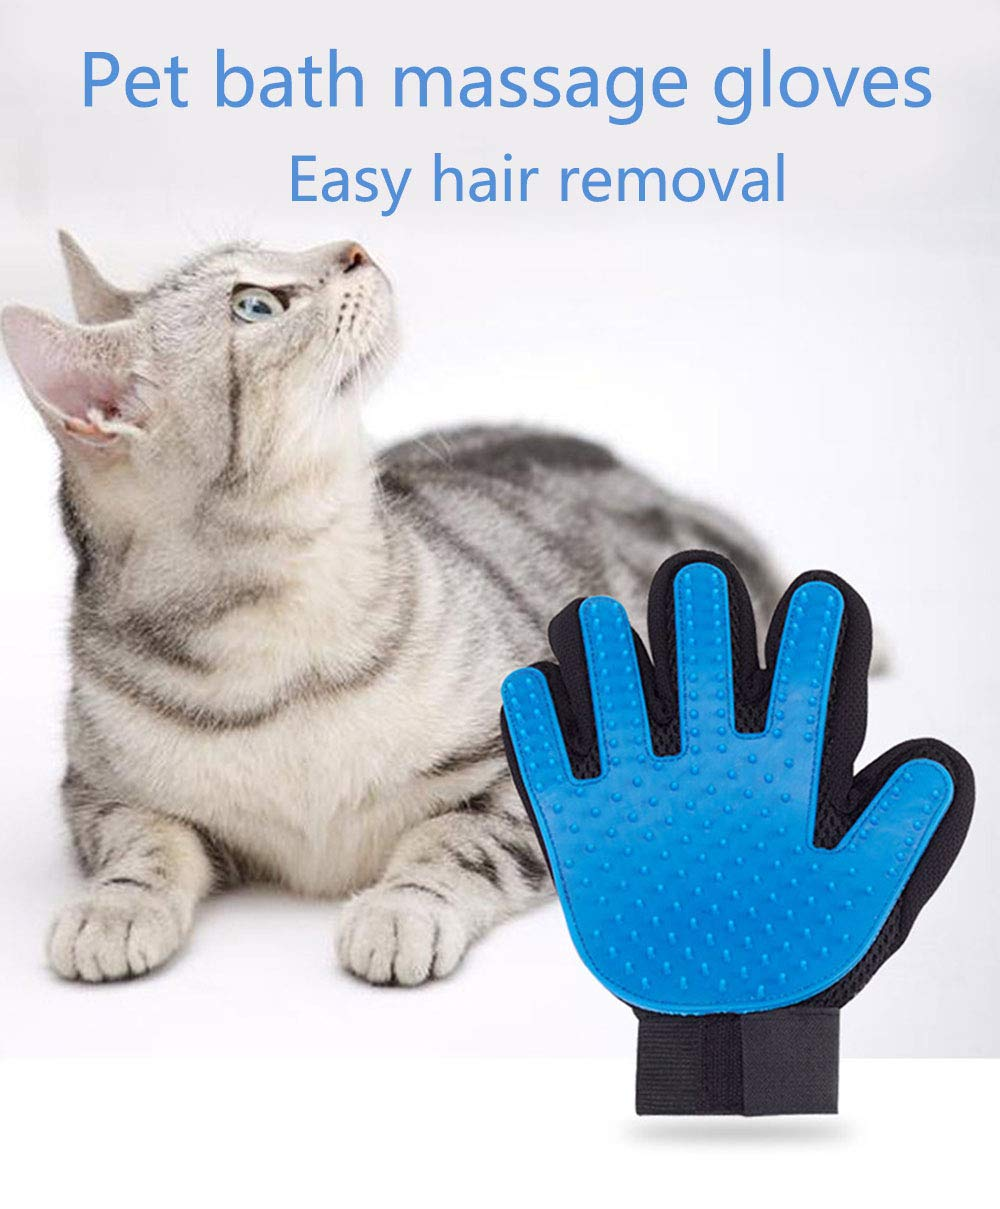 ZLBPET Pet Grooming Gloves Cat and Dog Massage Bath Brush Five-Finger Design Fully Cleaned Non-Toxic Silicone Easy Hair Removal Suitable for Cats Dogs Horses and Rabbits,Blue,Left